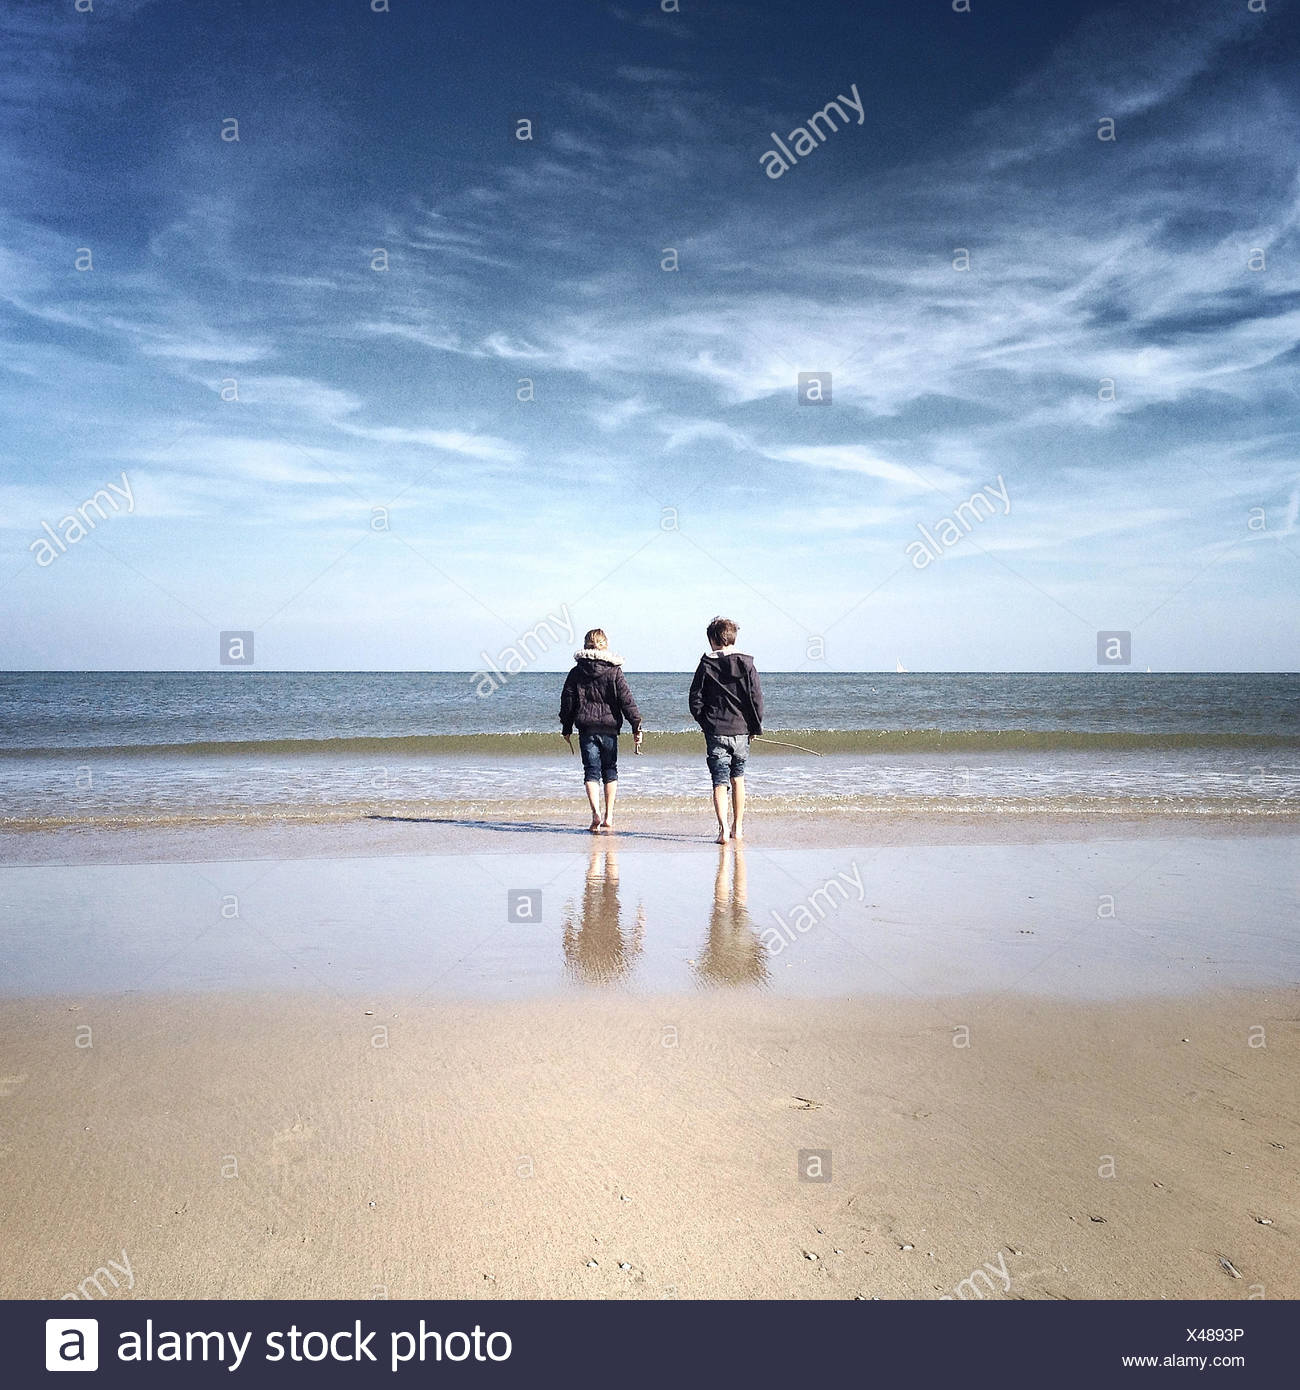 Rear view of two children on beach - Stock Image